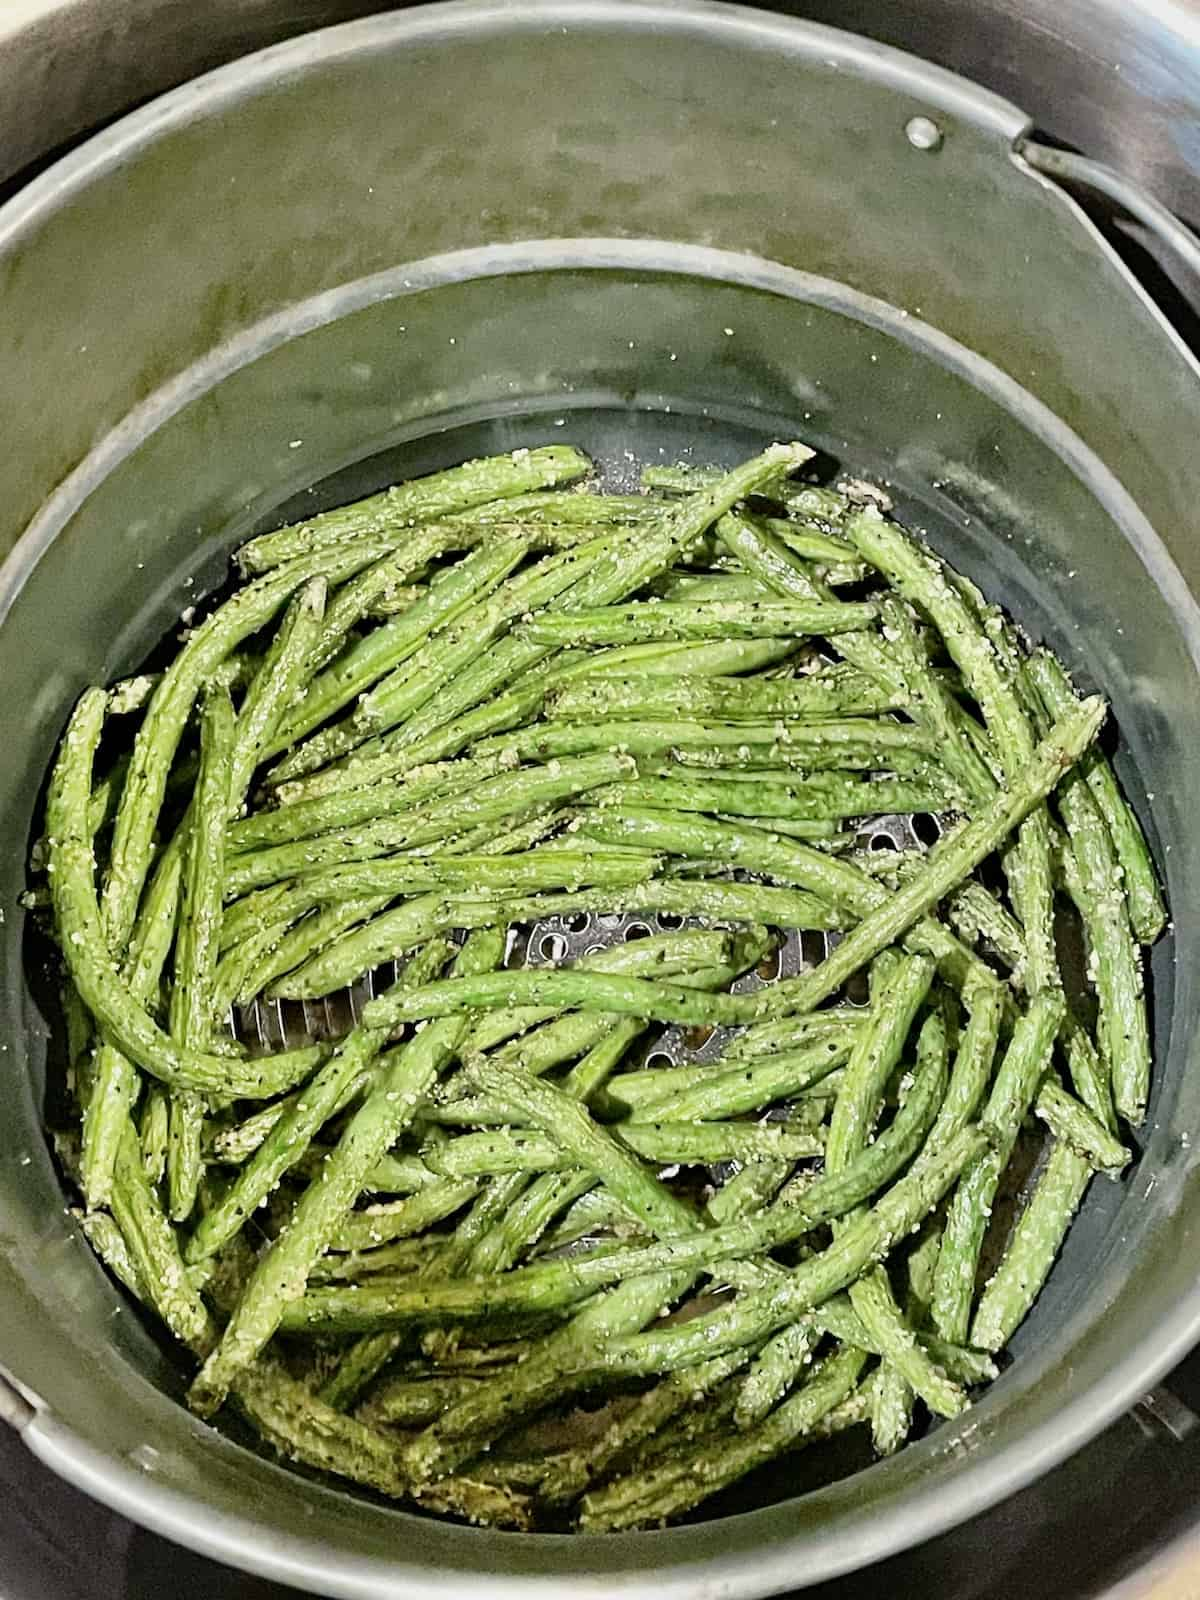 green beans in an air fryer basket tossed with salt and pepper